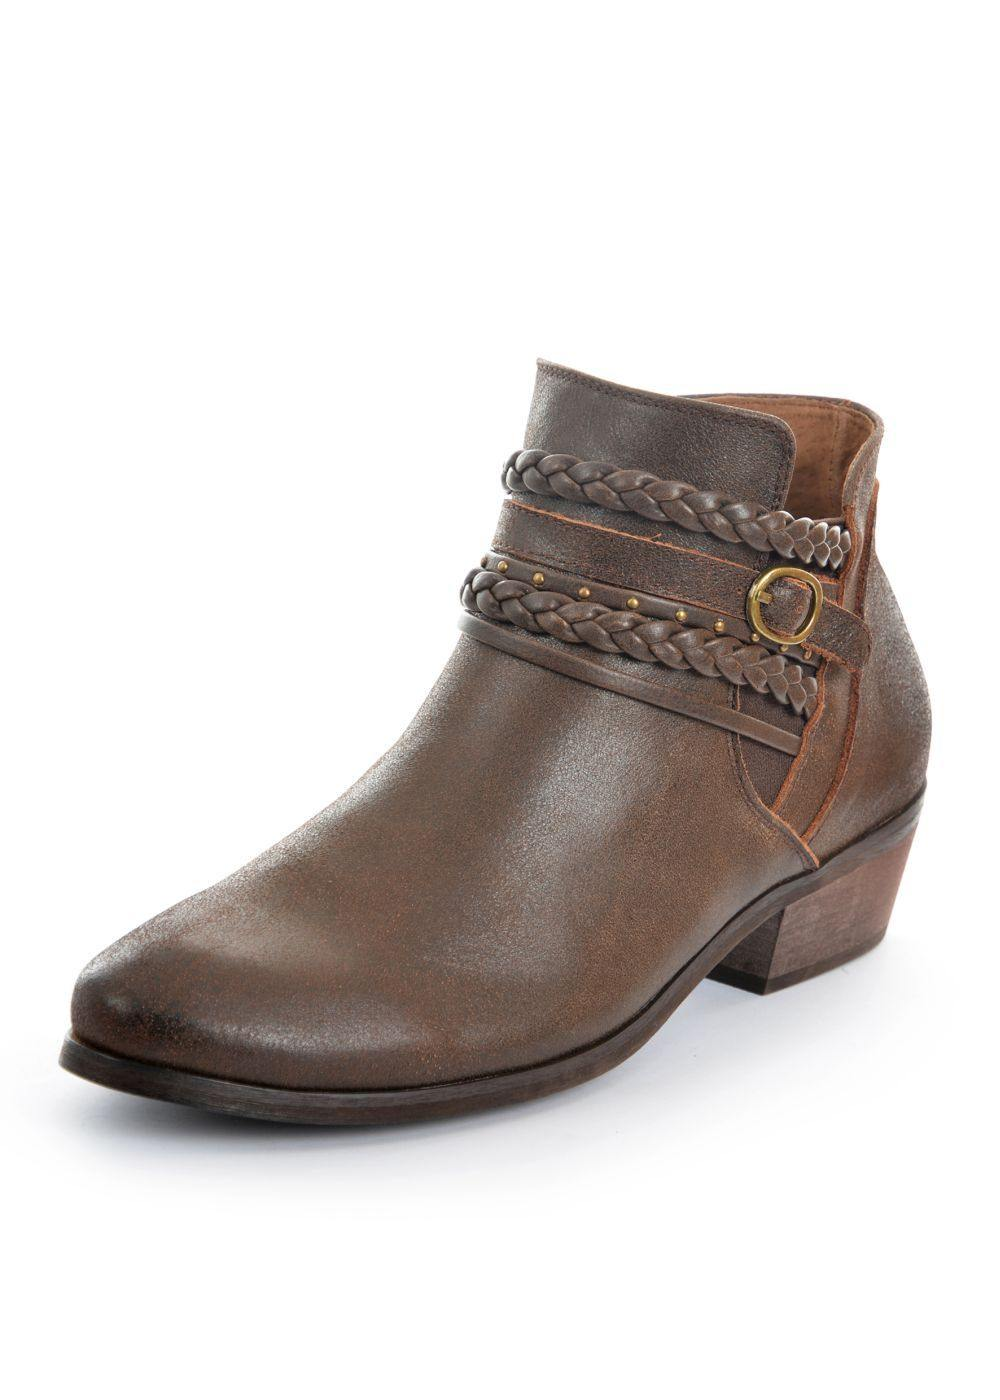 Thomas Cook Braid Boot - Harley and Rose